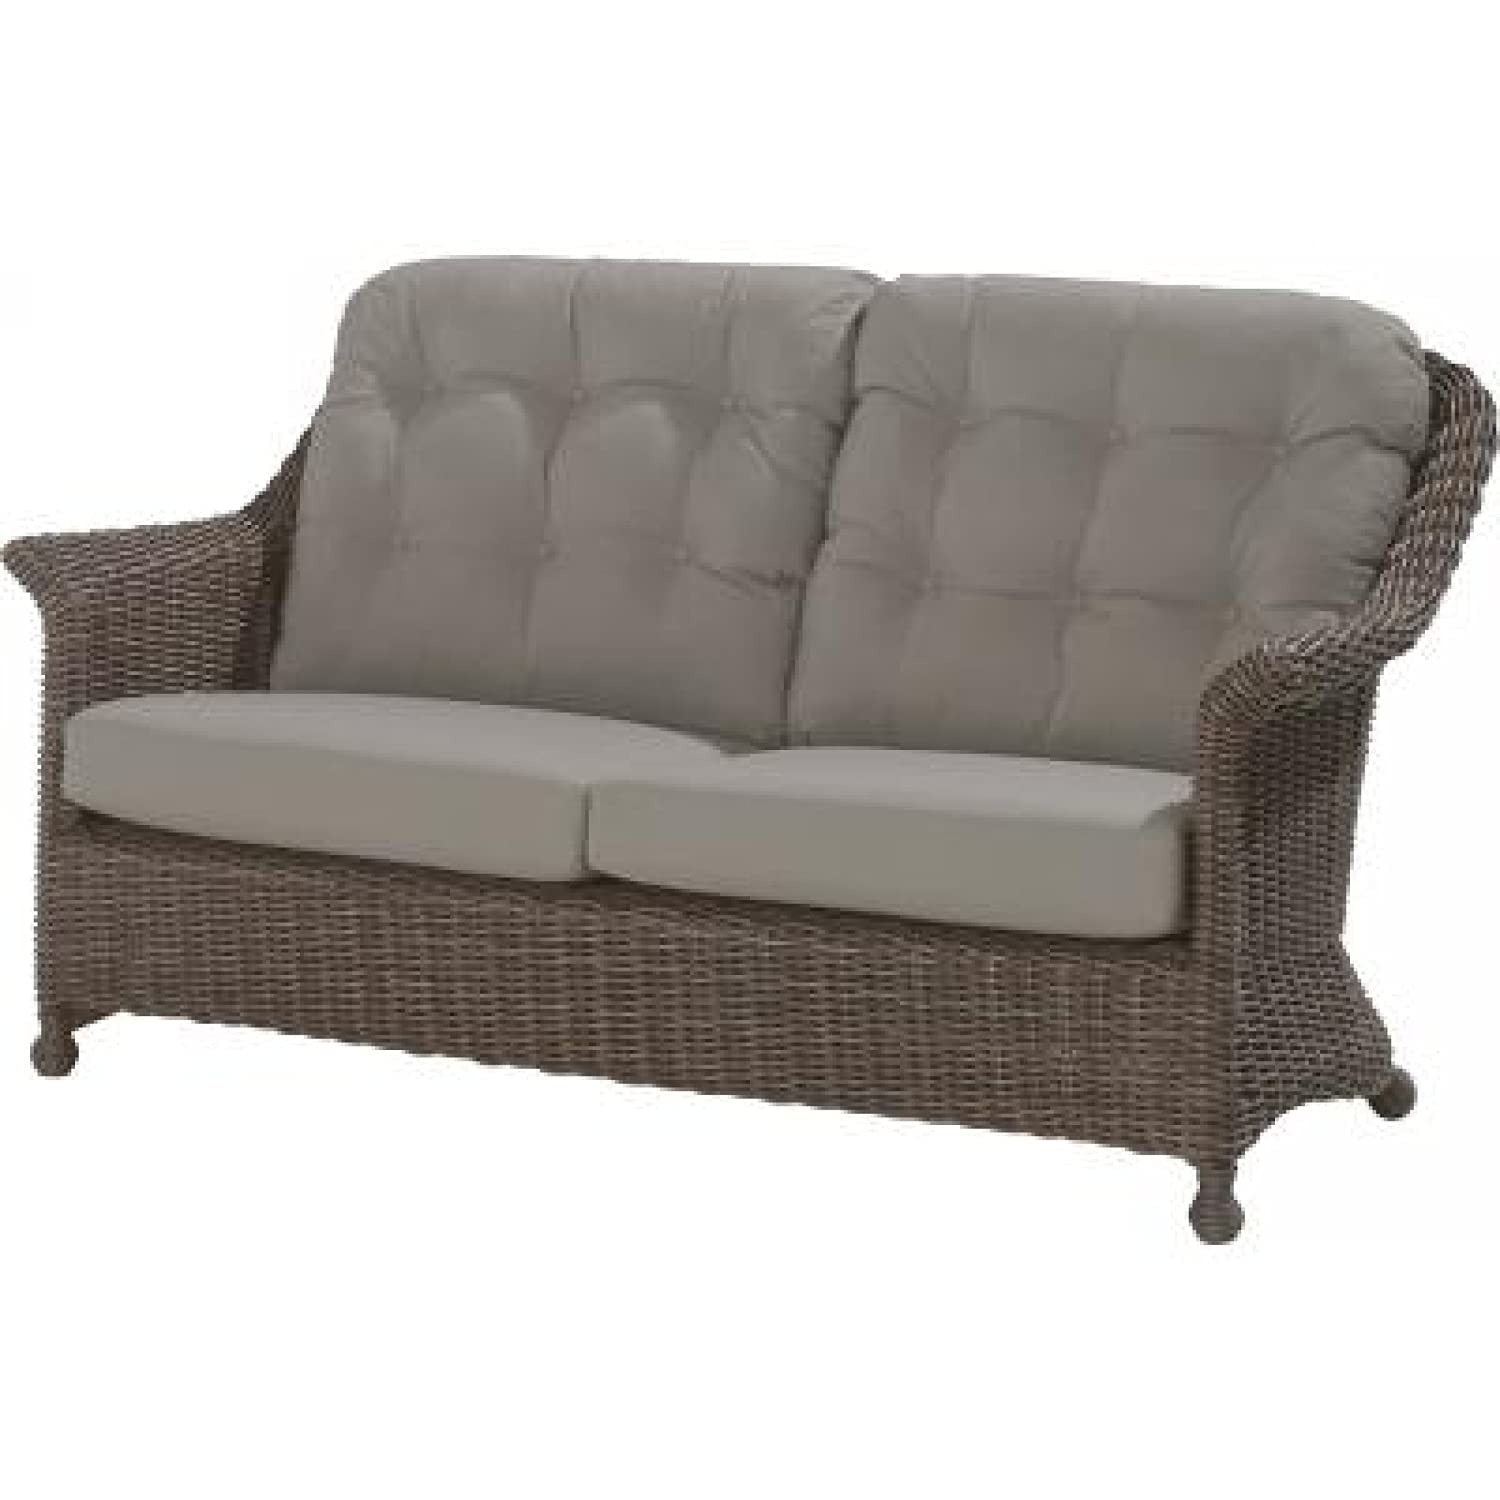 4Seasons Outdoor Madoera 2.5-Sitzer Sofa Polyrattan colonial